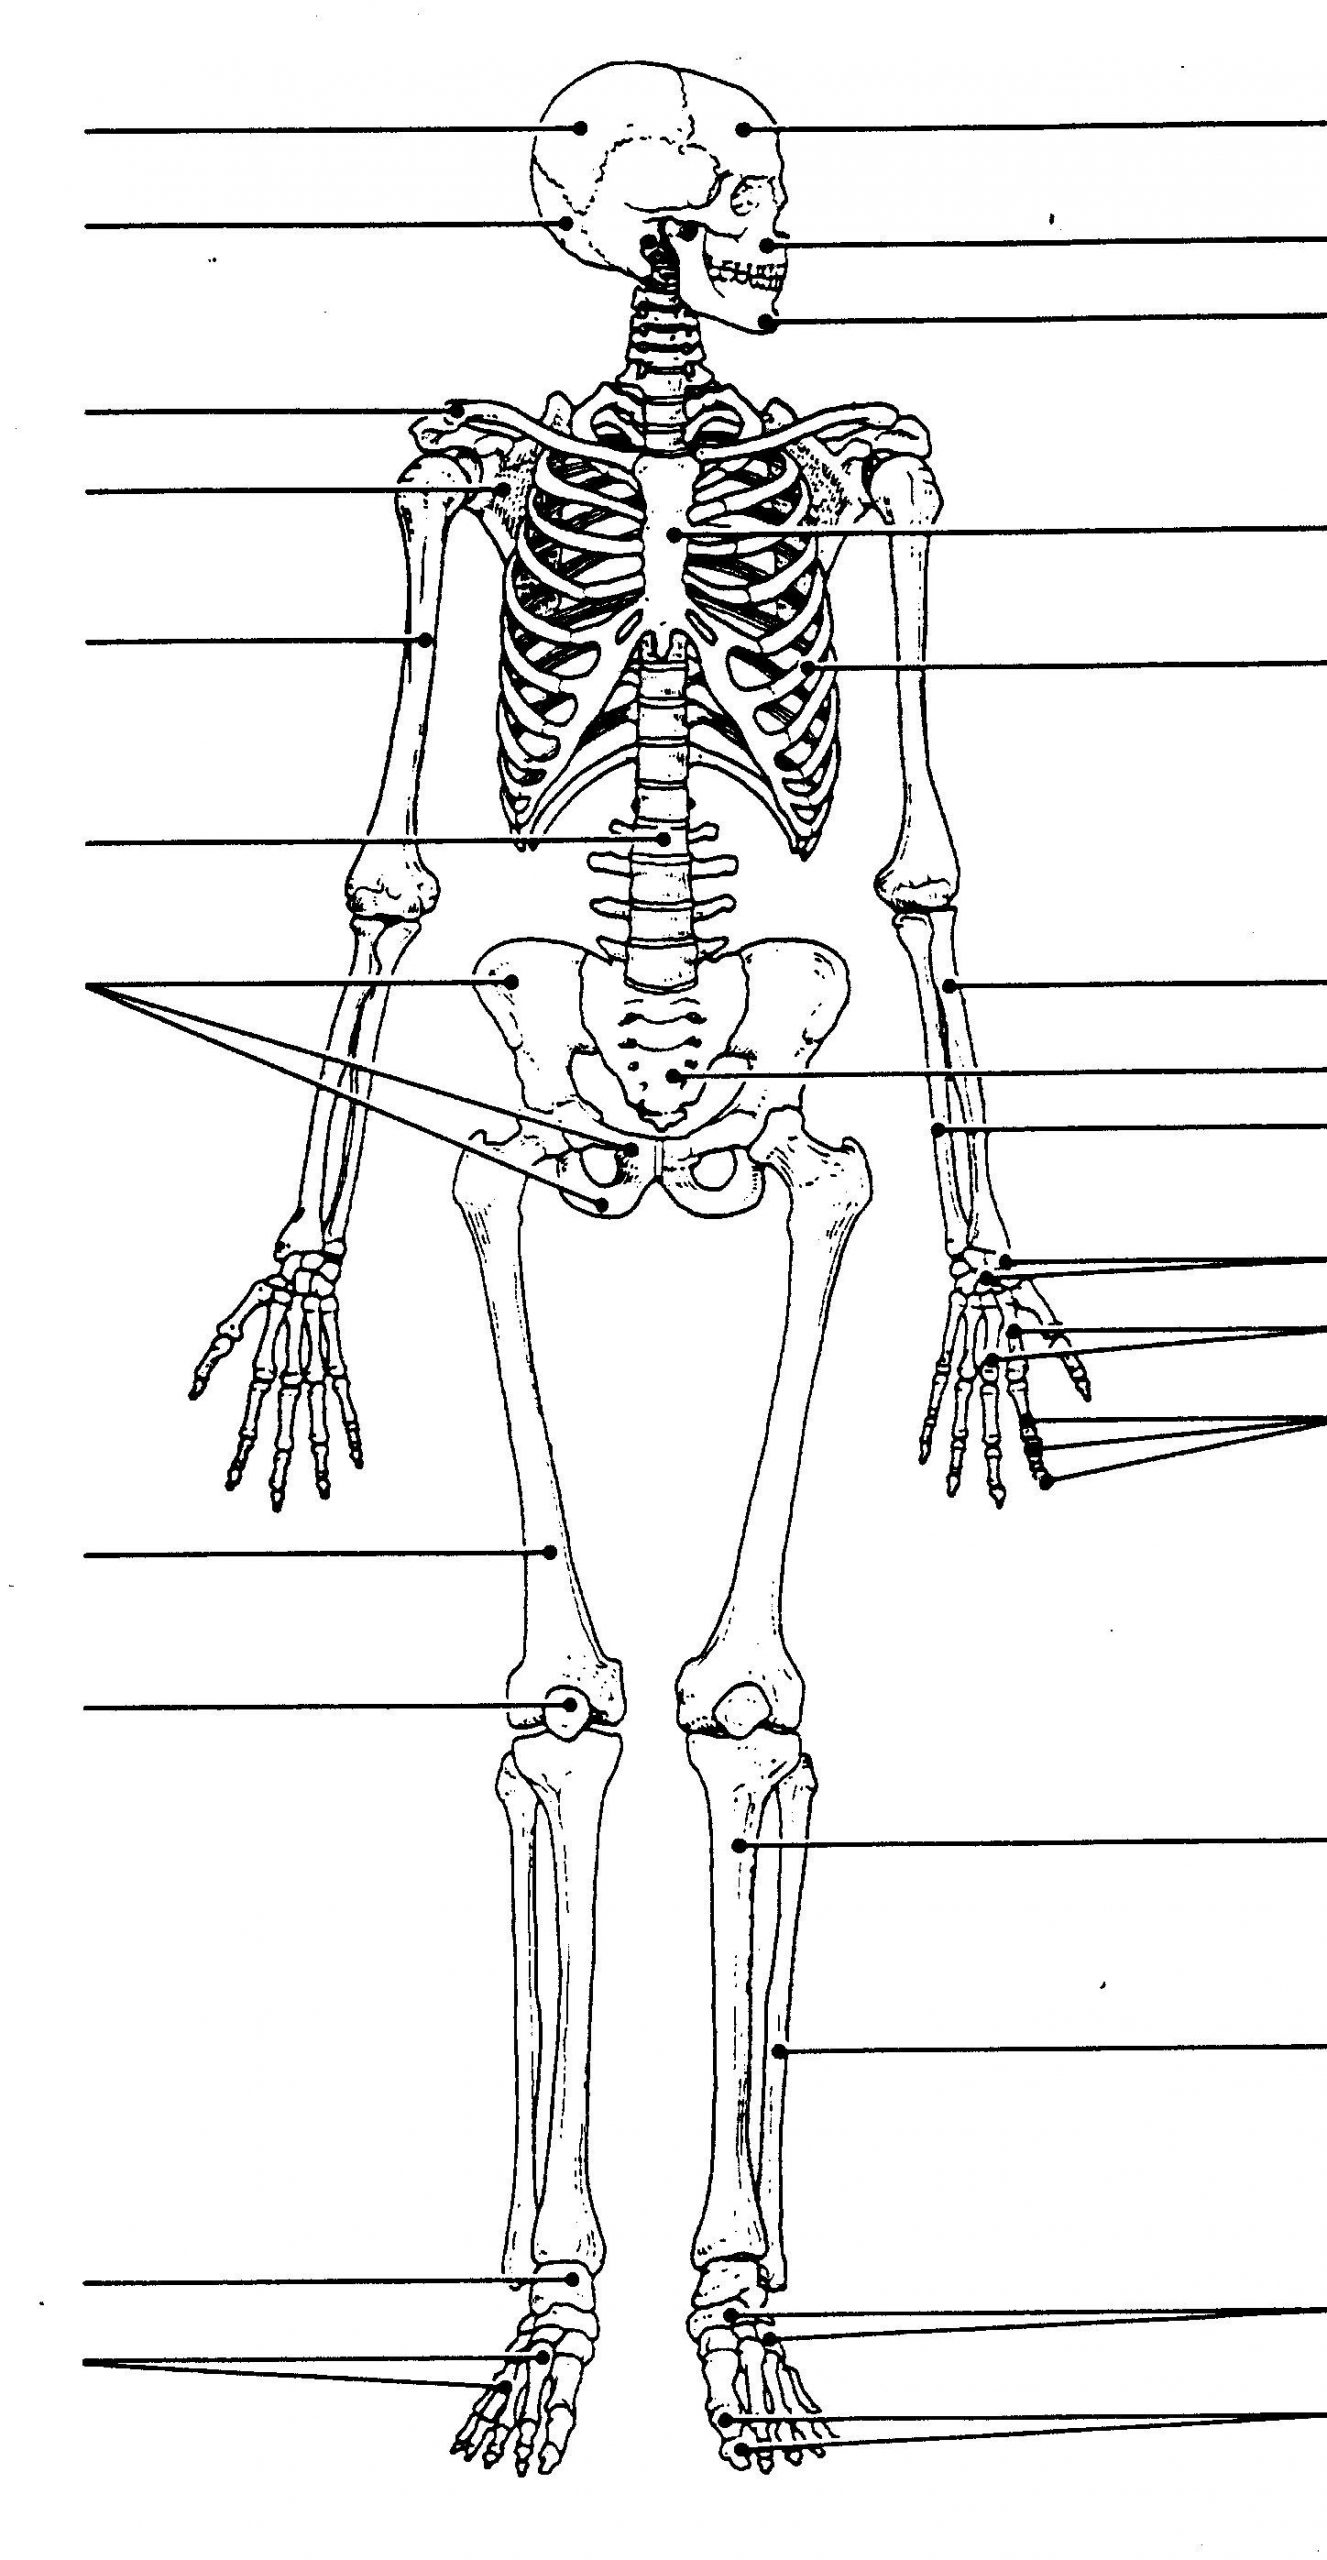 Human Body Worksheets Middle School Human Skeleton Diagram without Labels Human Skeleton